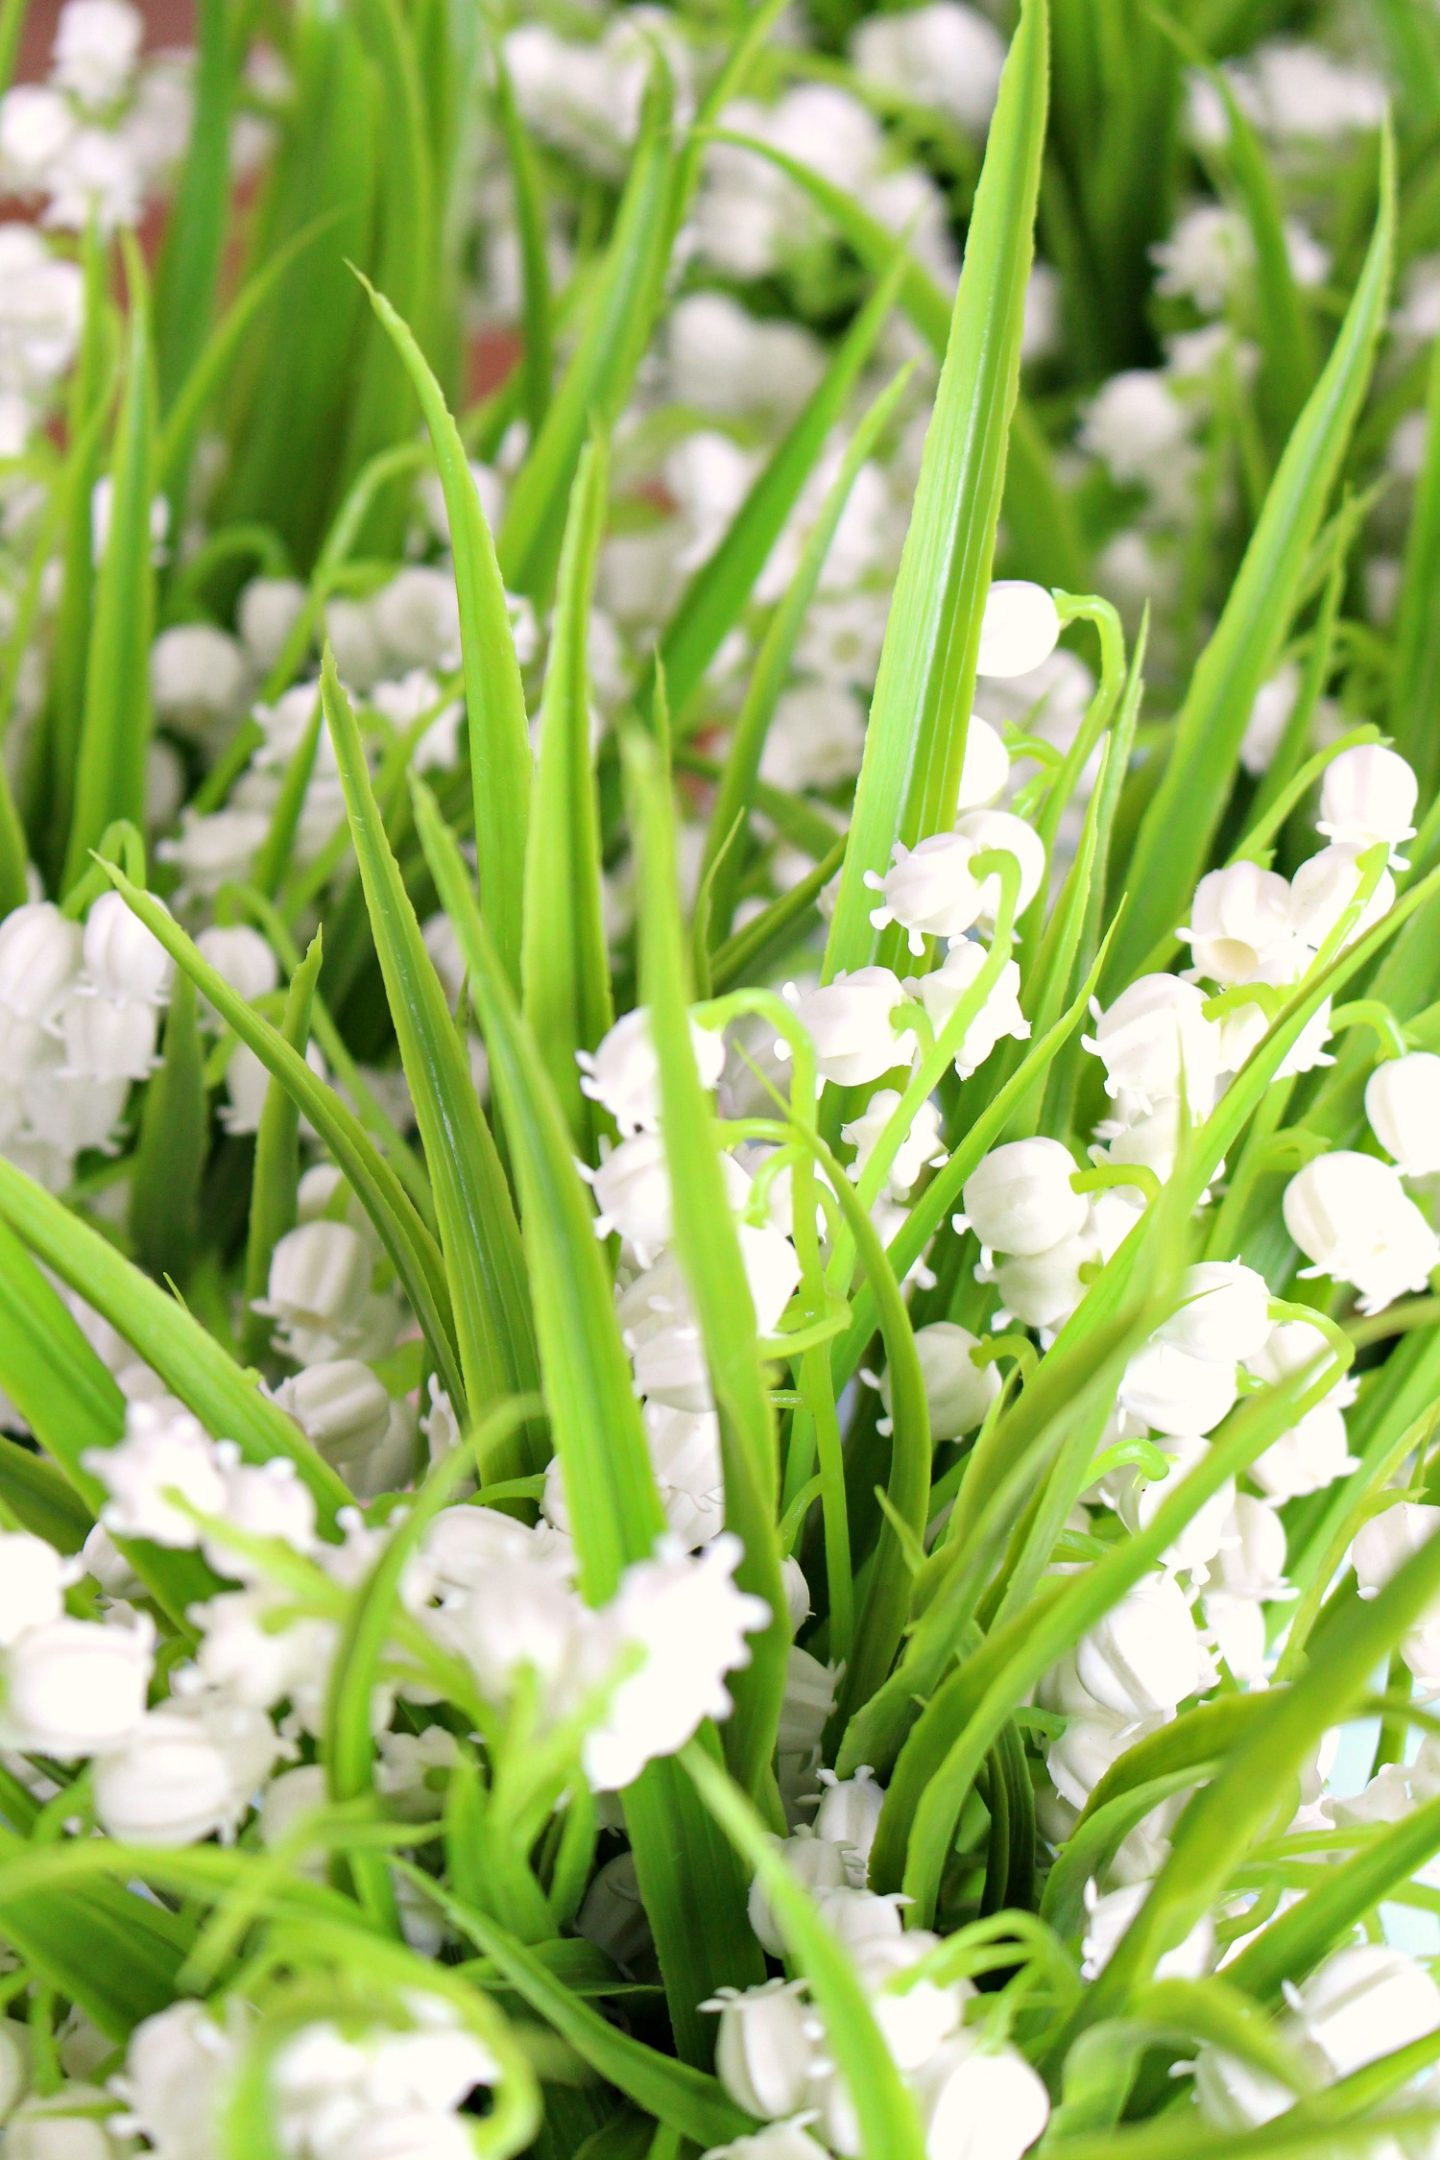 Artifical Lily of the Valley Flowers